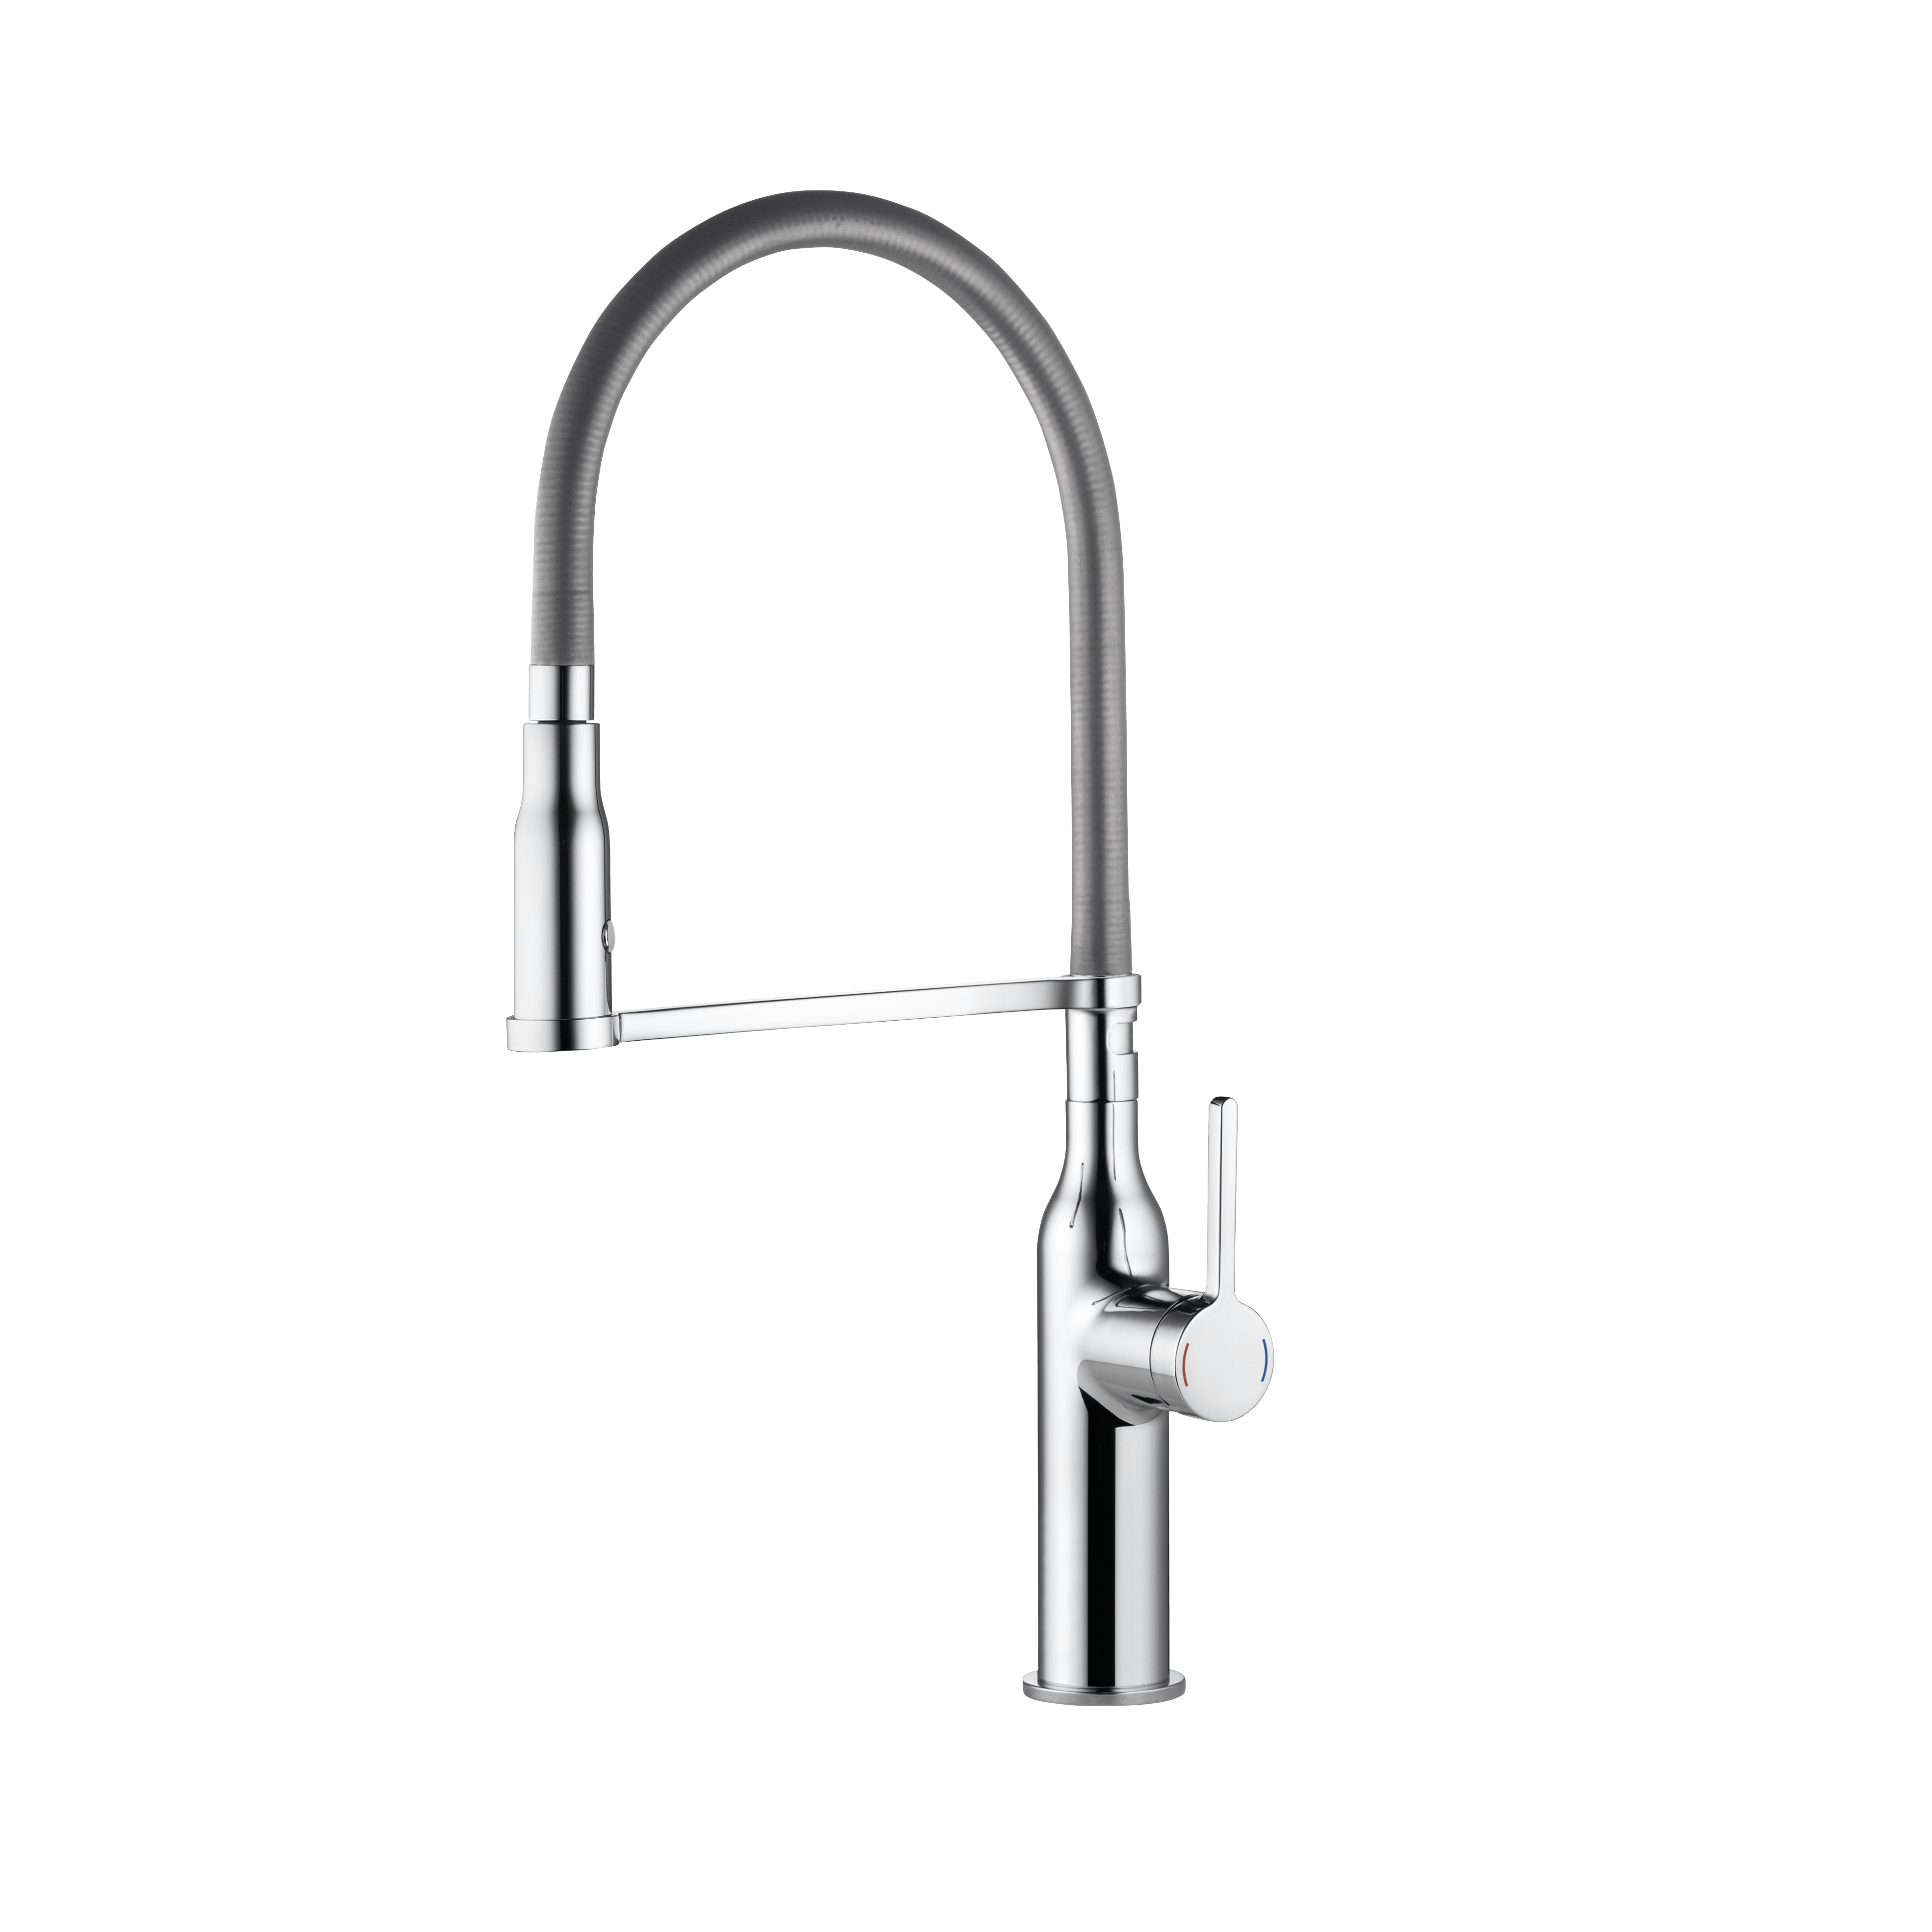 kwc focus faucet america plumber and how to magazine standard fixtures faucets materials bath articles zoe